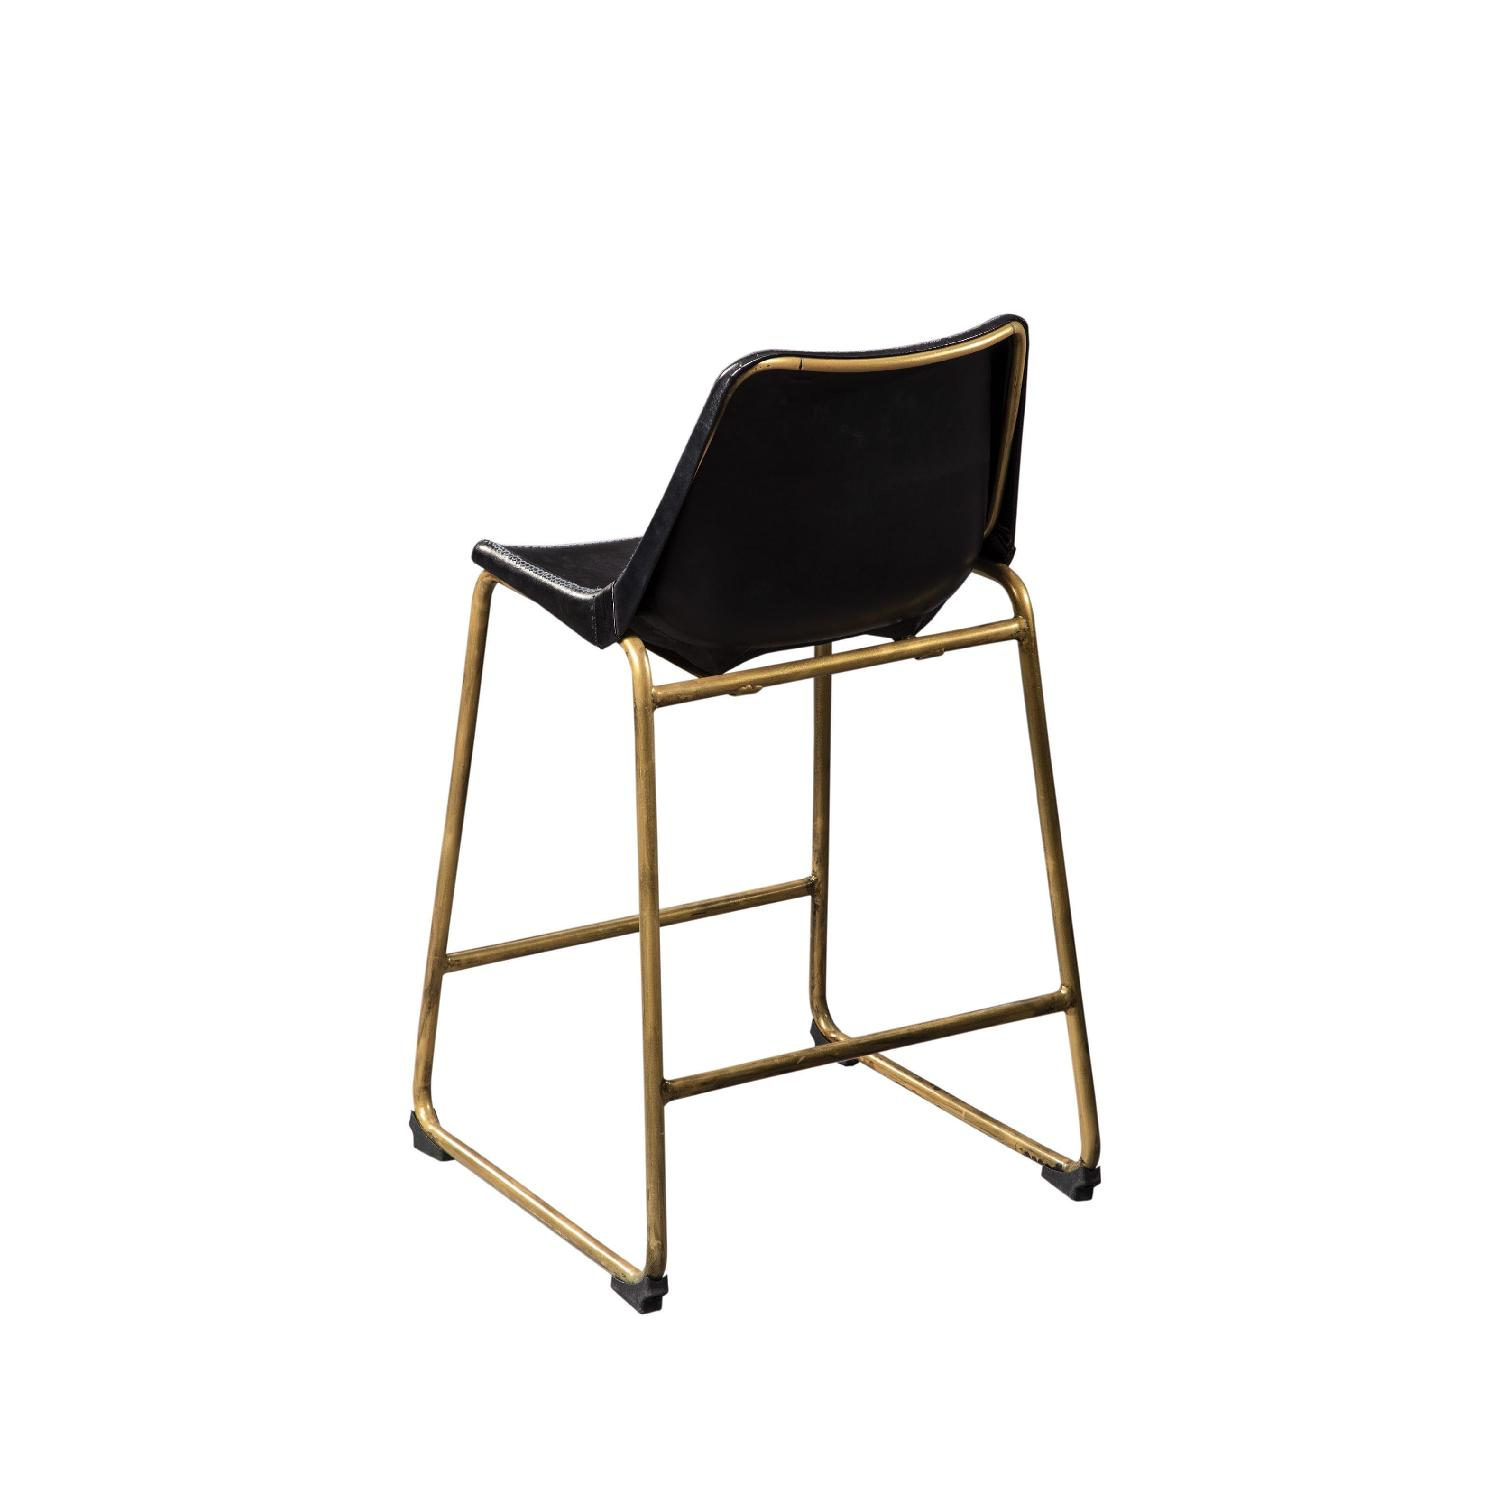 Counter Height Chair w/ Black Seat & Brass Base - image-2